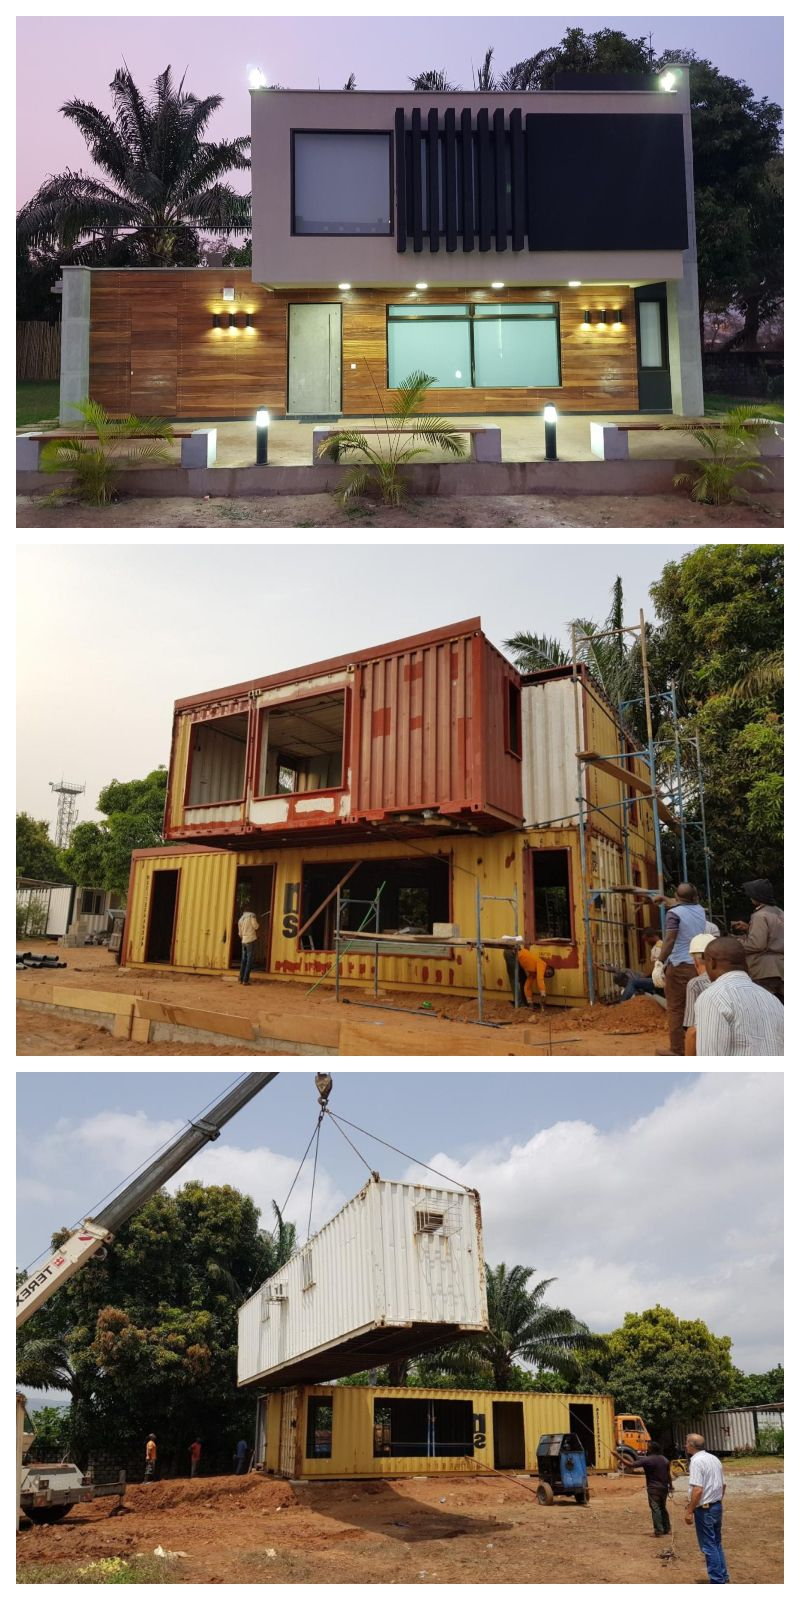 Shipping Container Home in Abuja – Nigeria